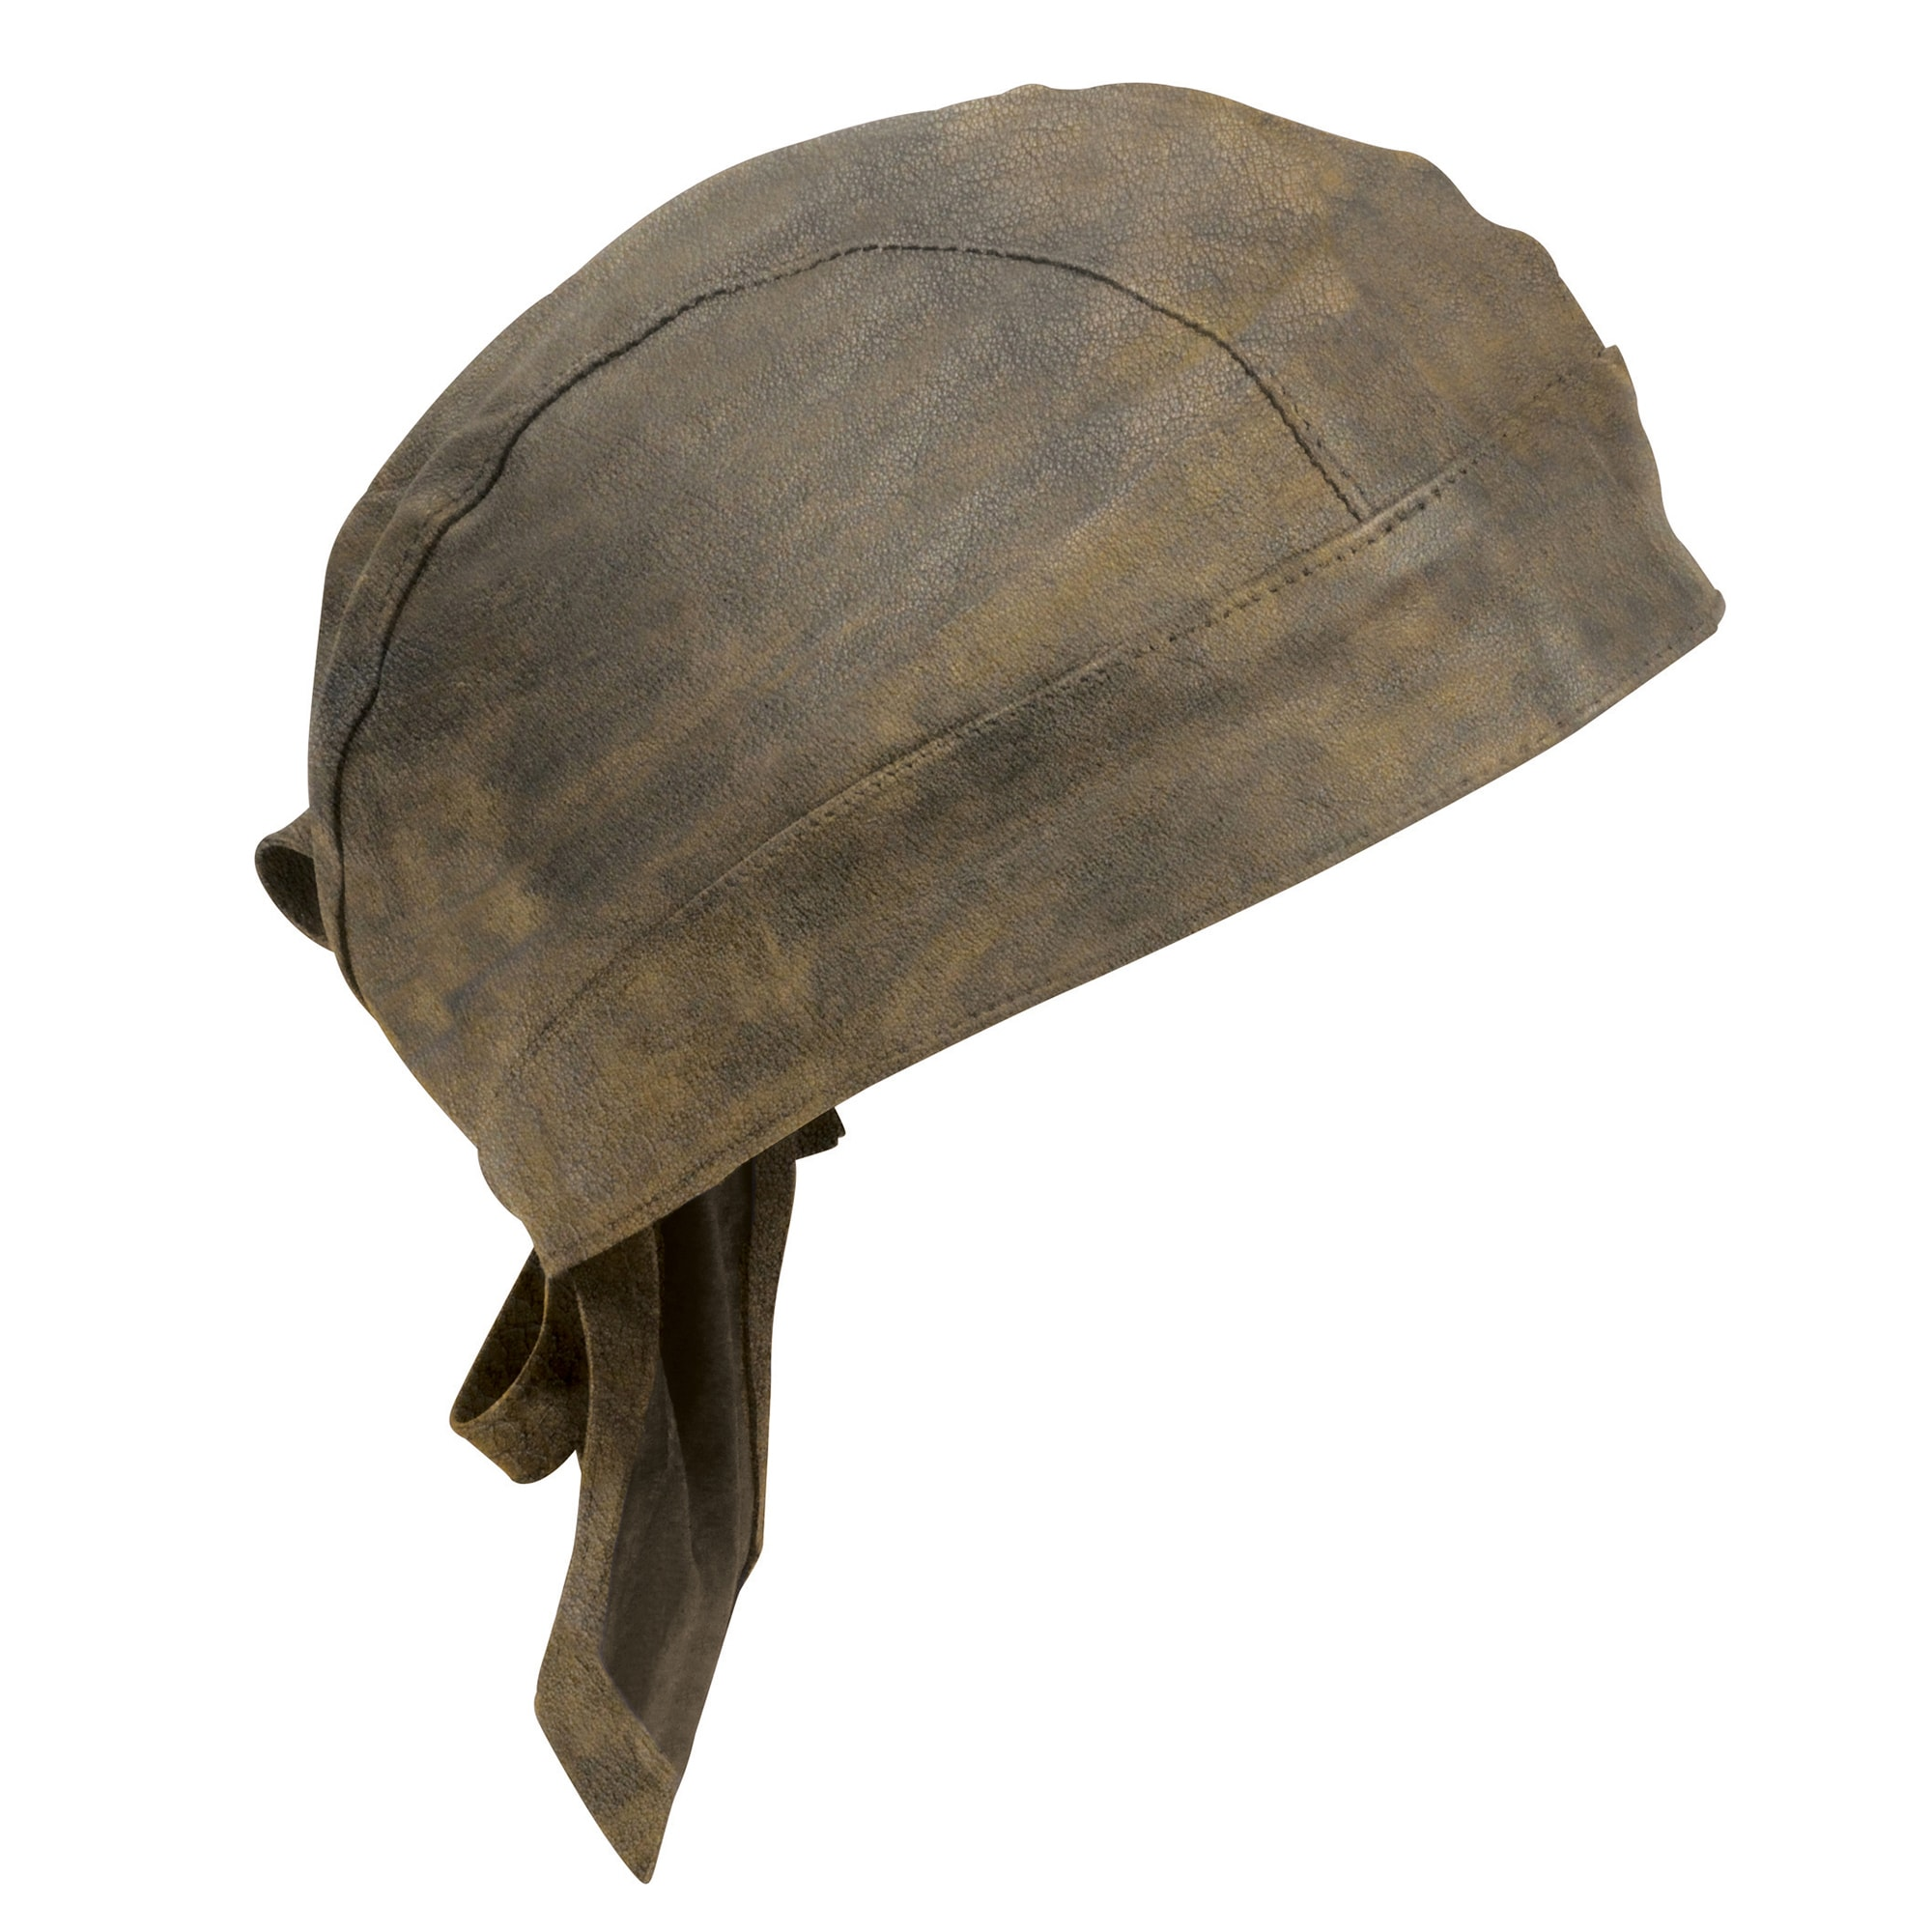 Distressed Brown Leather Skull Cap - Milwaukeee Leather